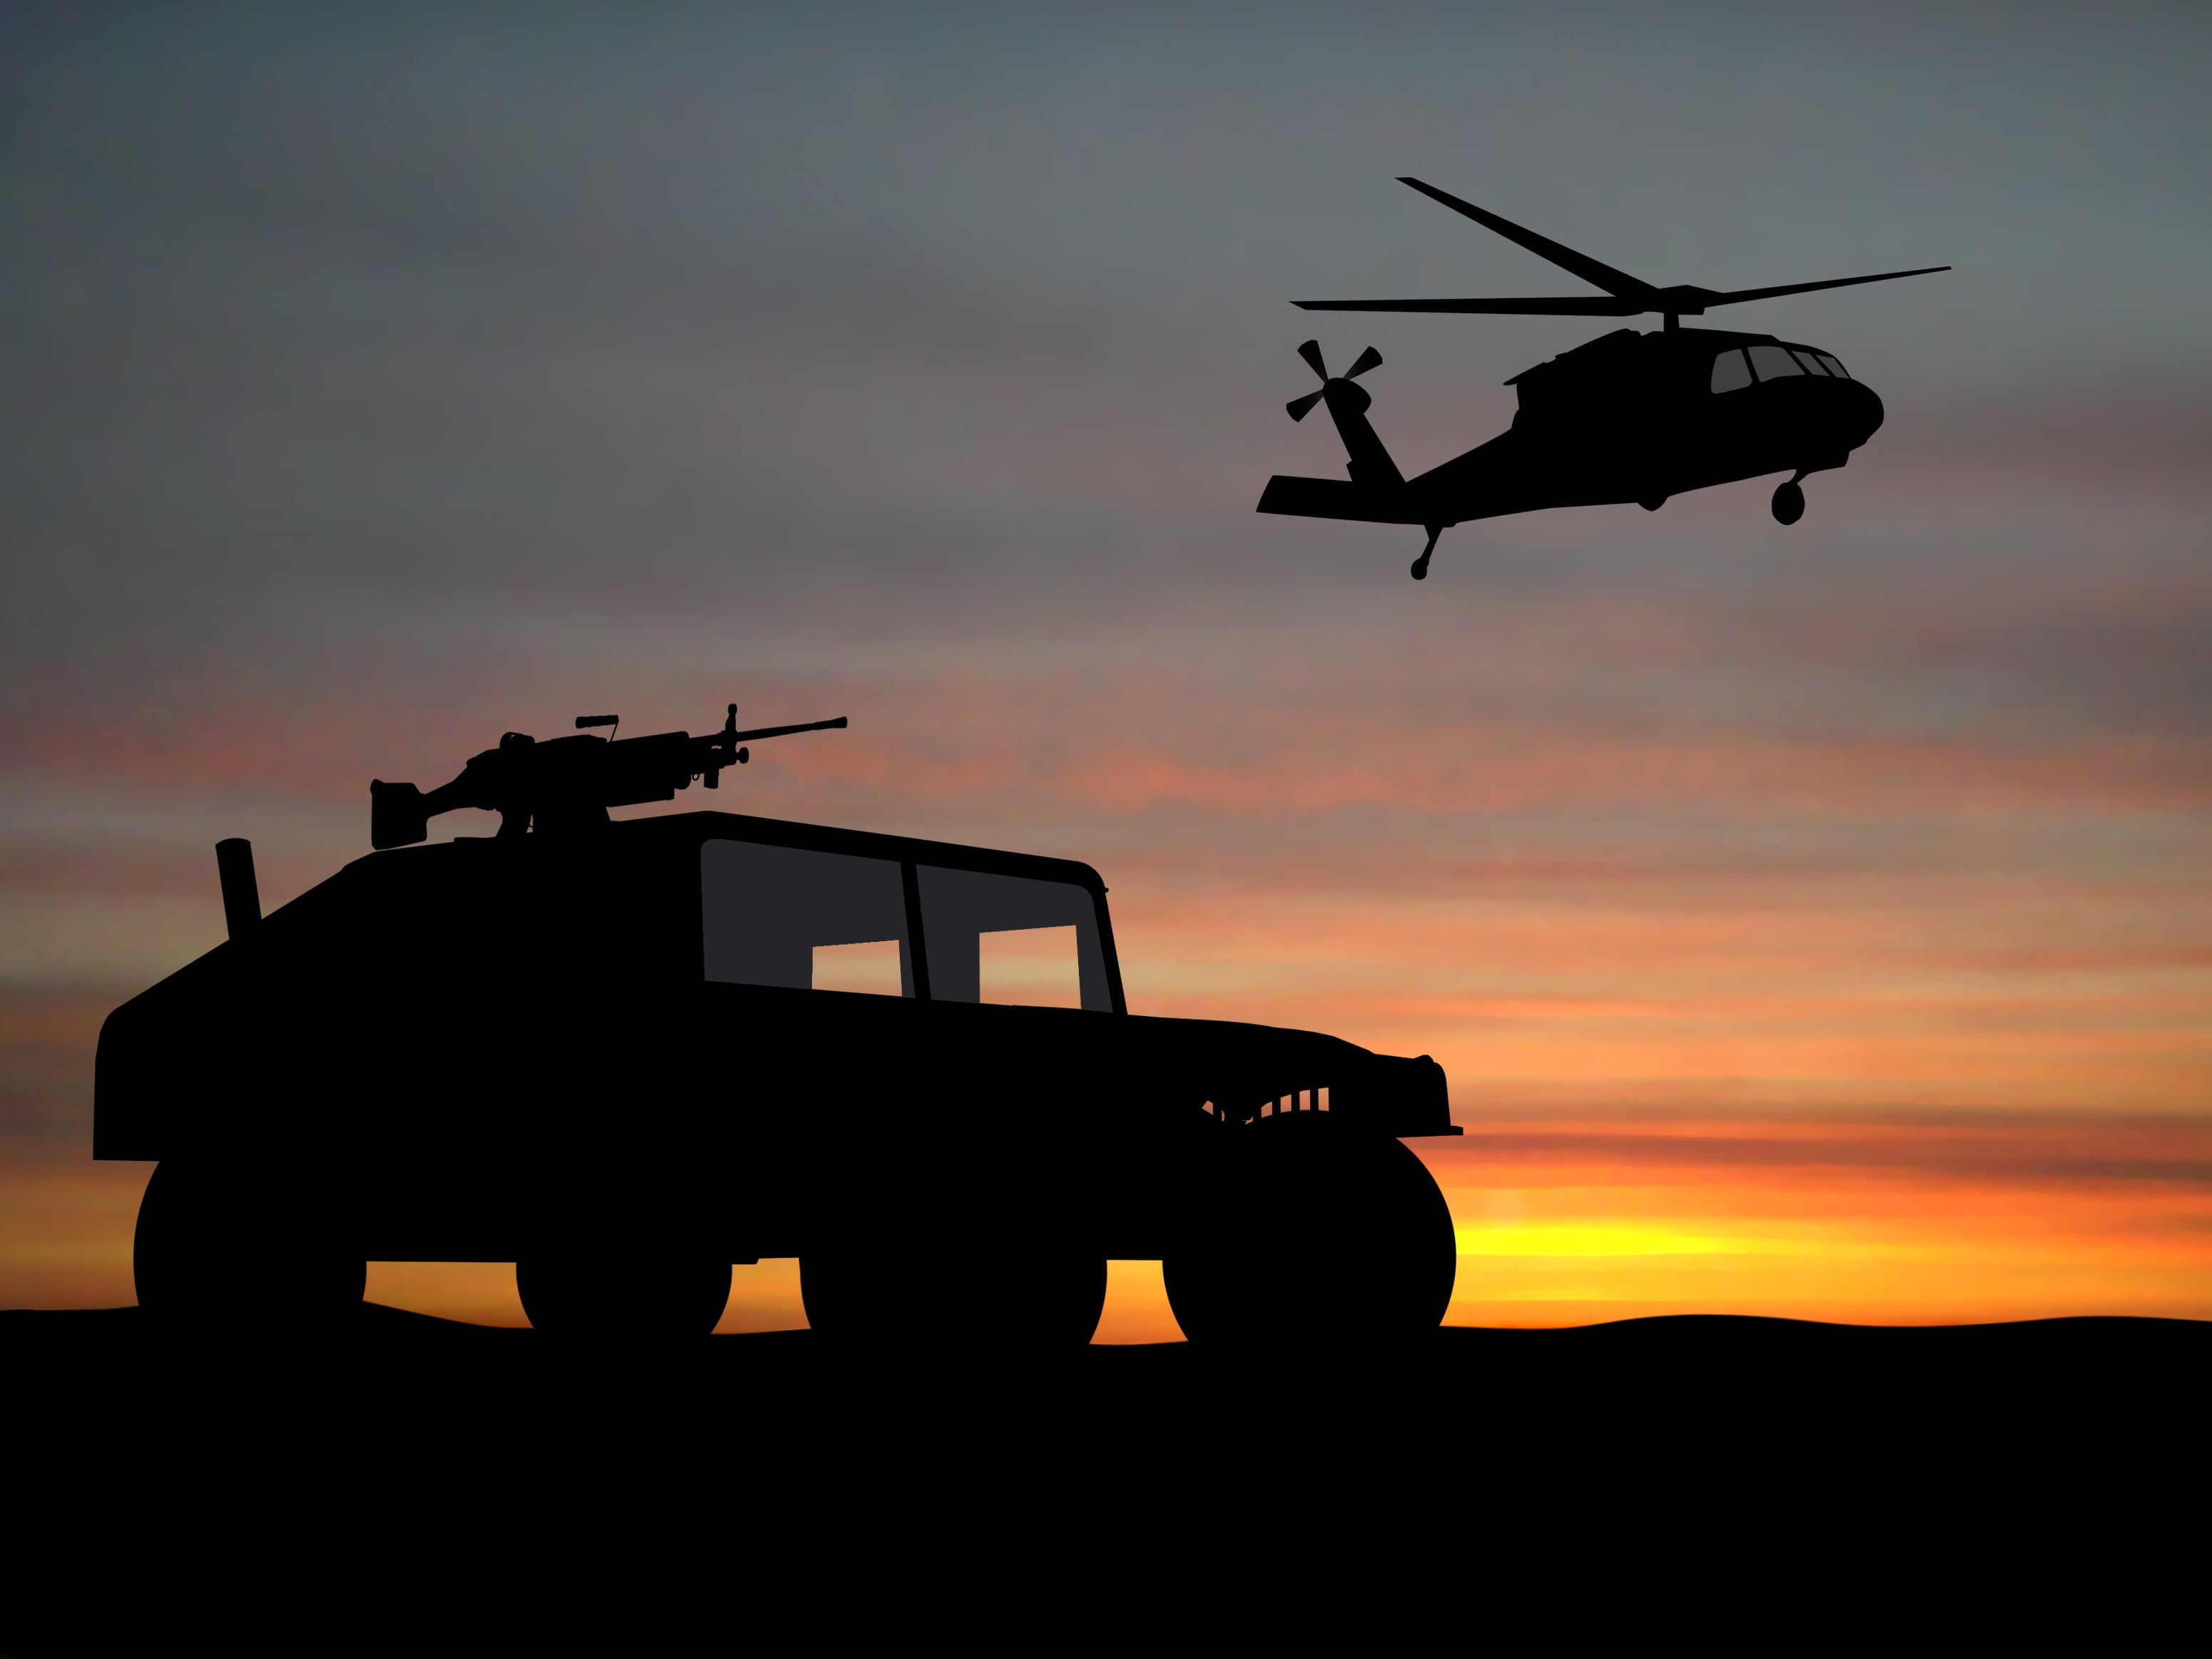 military vehicles over the sunset